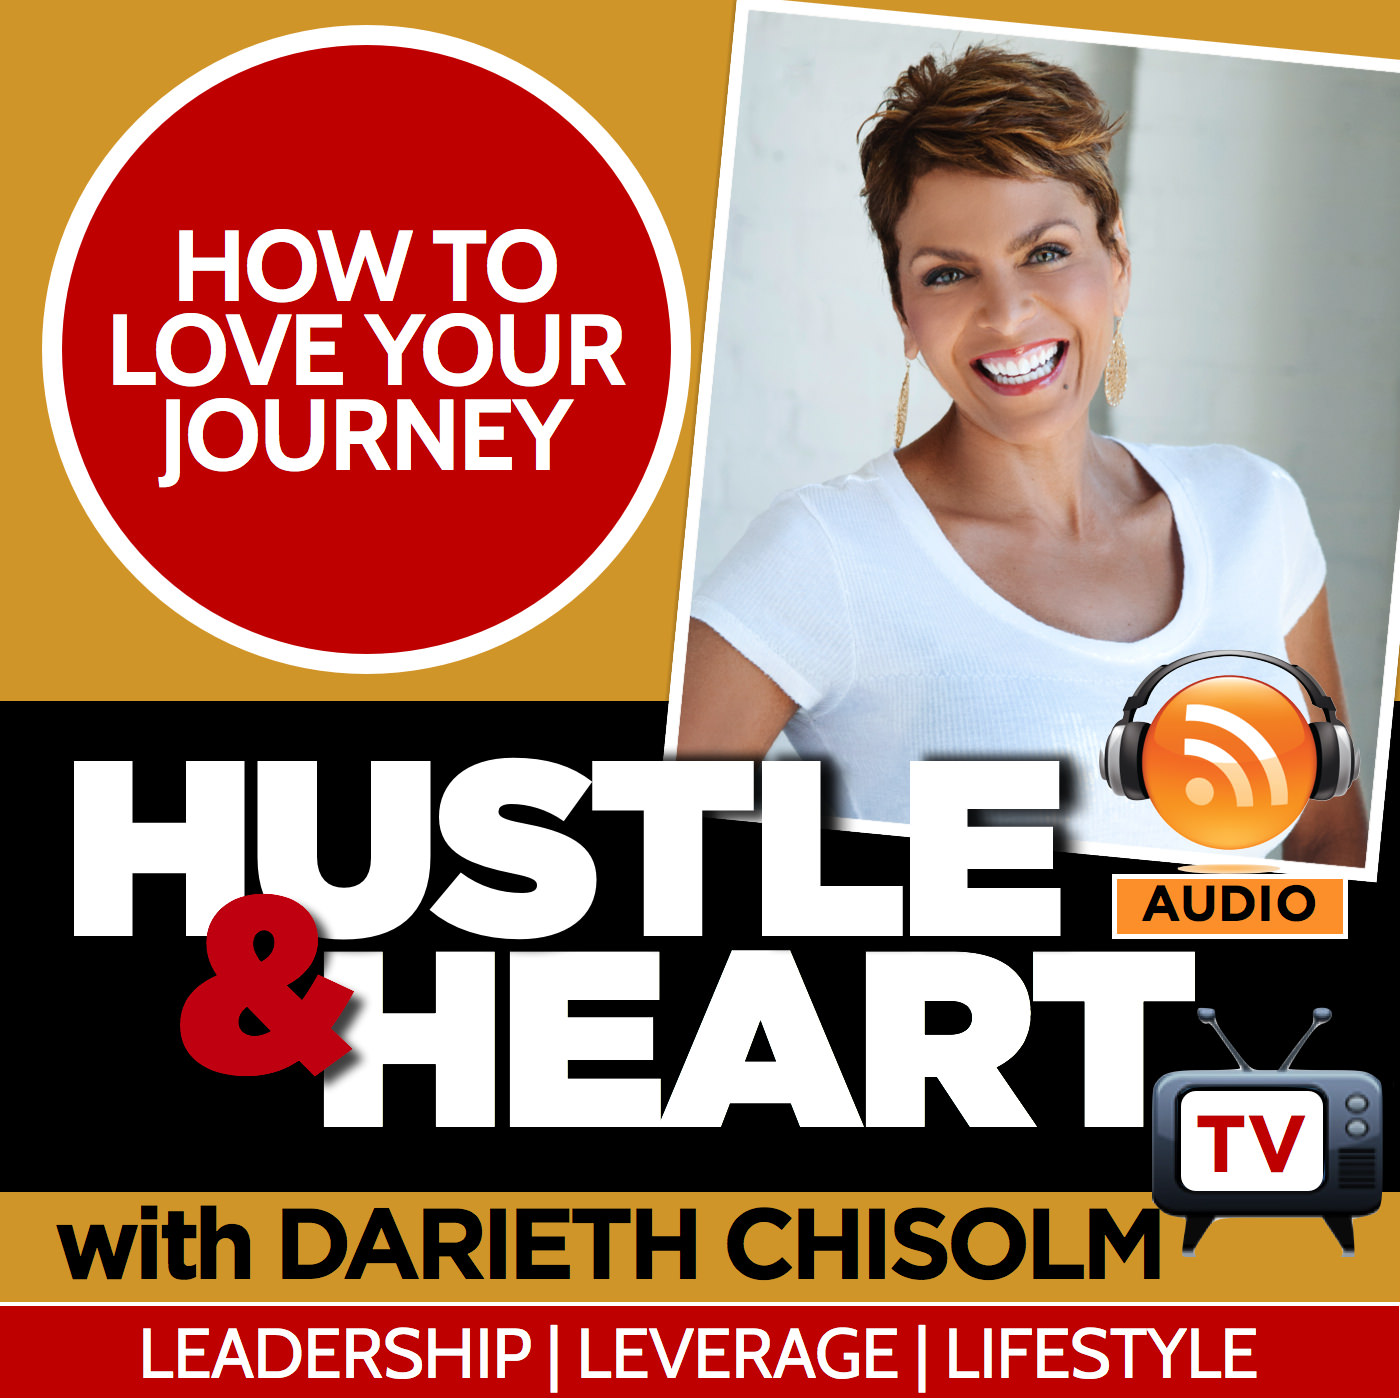 Hustle and Heart TV with Darieth Chisolm - AUDIO version